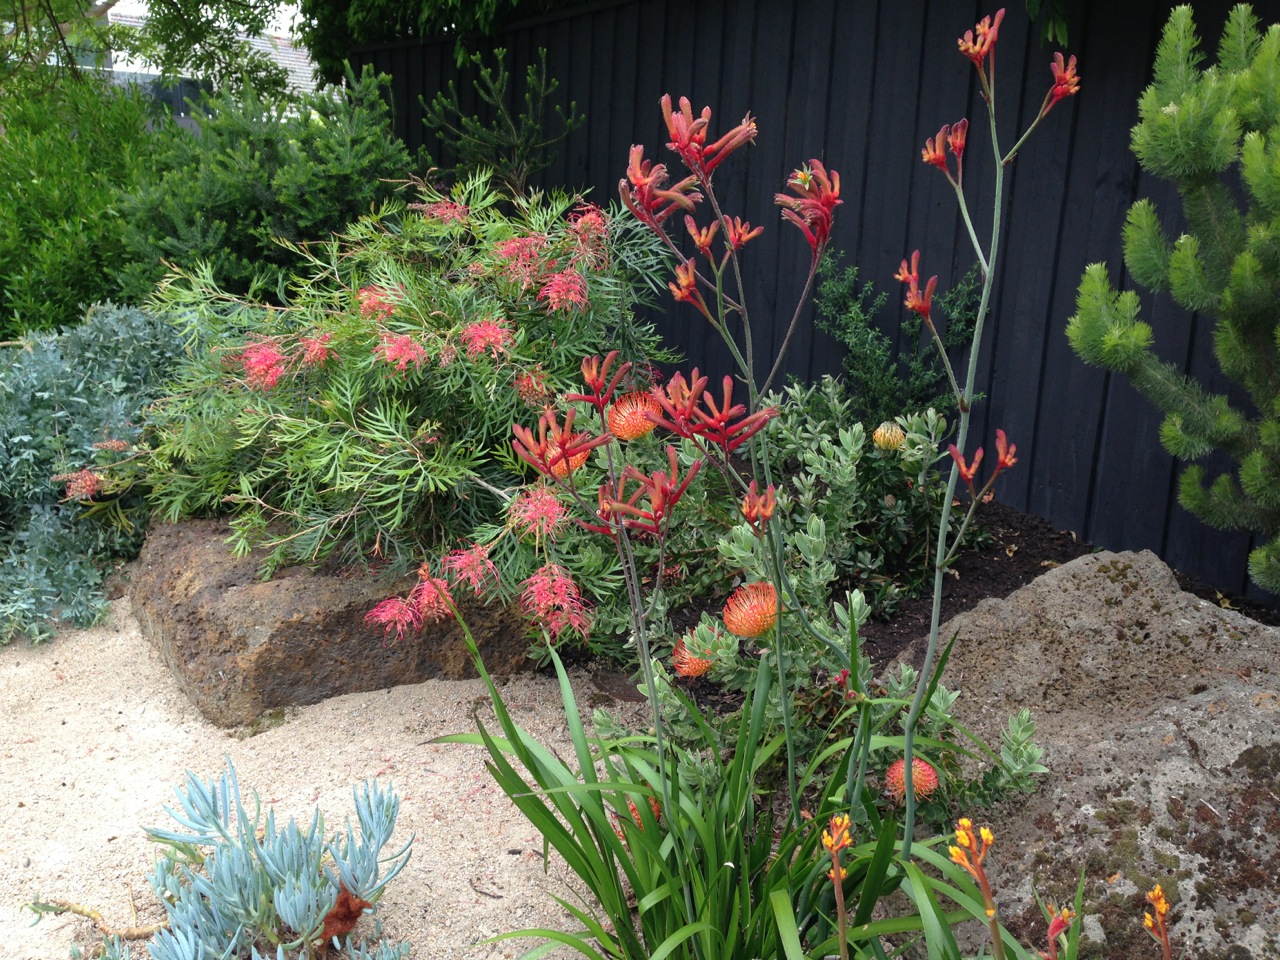 The best garden designer in australia janna schreier for Australian native garden design ideas